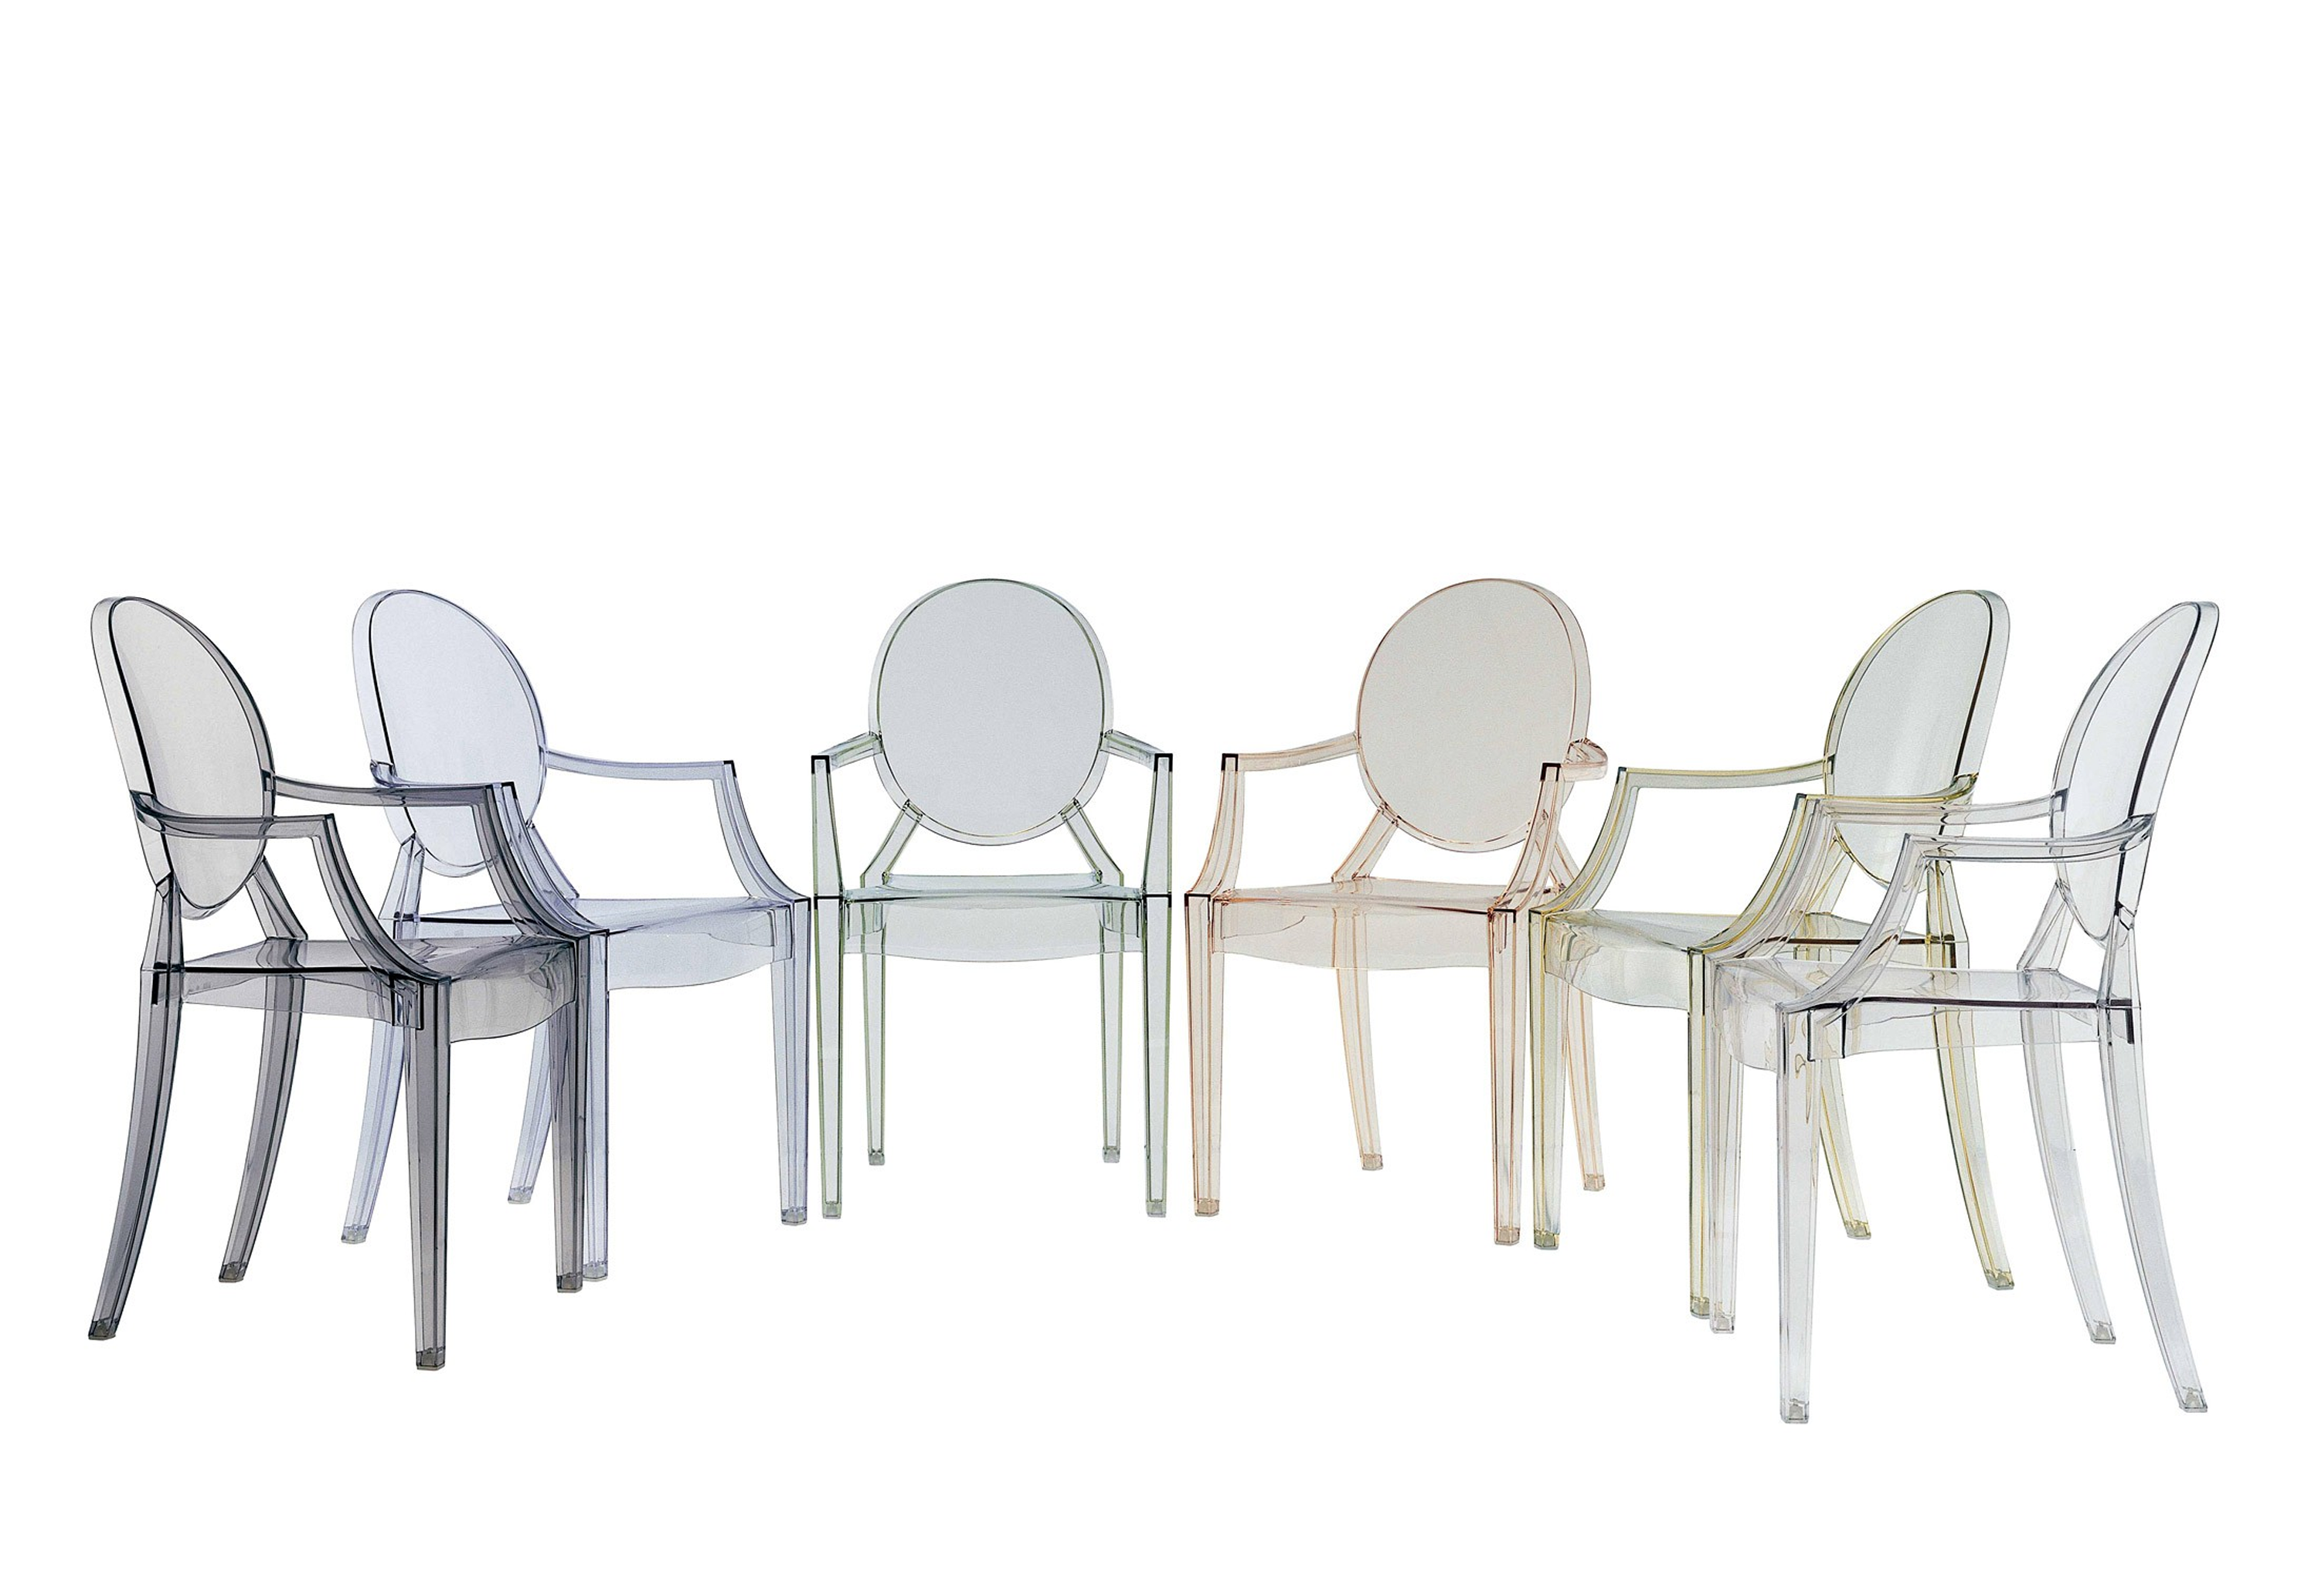 chairish ghost for four chairs by available unused starck original with louis philippe chair xvi kartell product tags